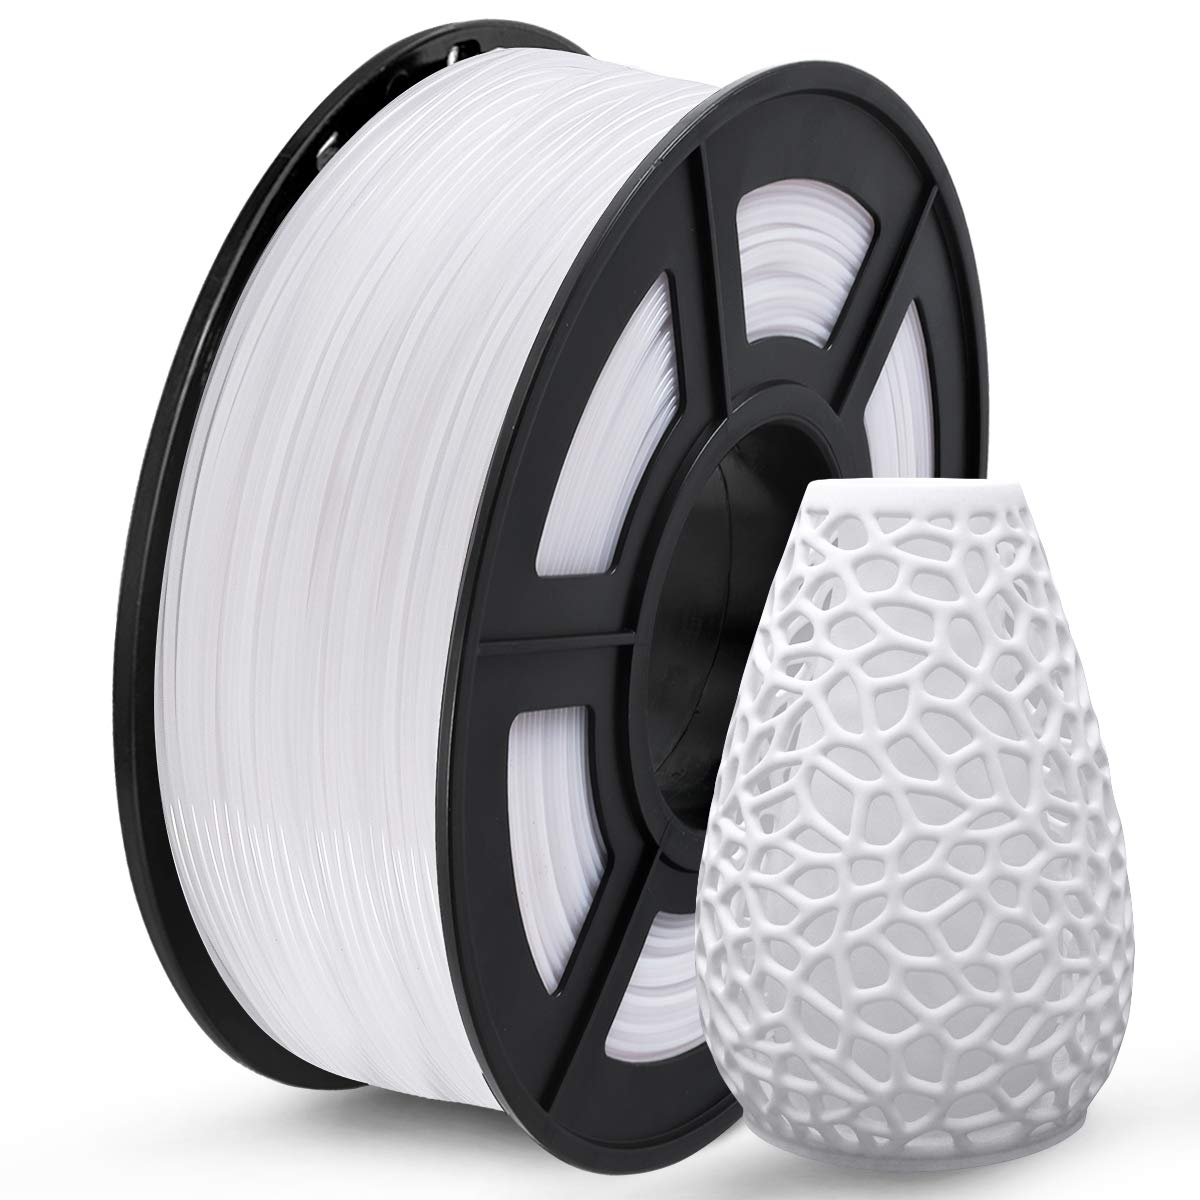 Wholesale price multicolor 3.0mm / 1.75mm 3d printer filament PLA for 3d printing machine